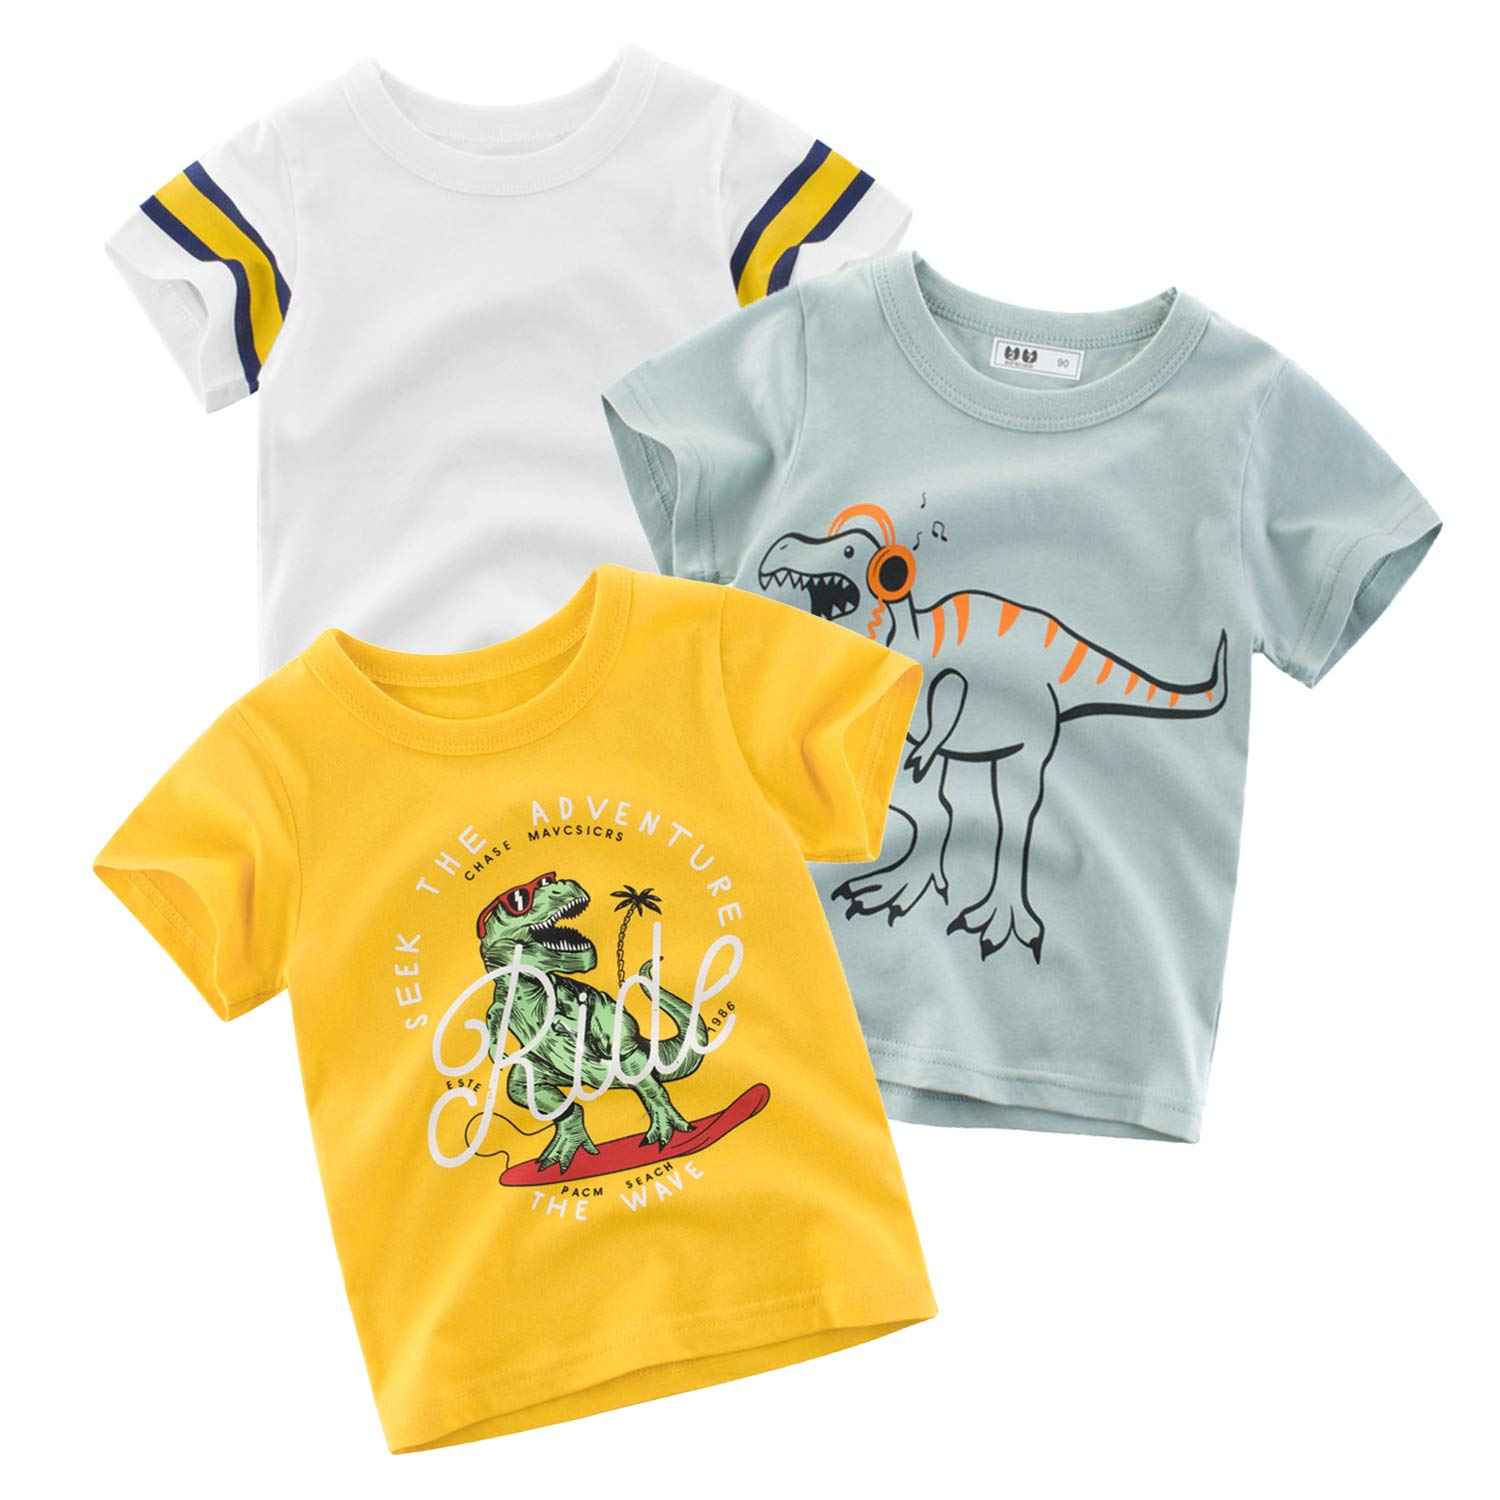 MALOMME Baby Boy Clothes Boys Shirt 3-Pack Toddler Boys Short-Sleeve Boy Gifts Assorted T-Shirt for Boys